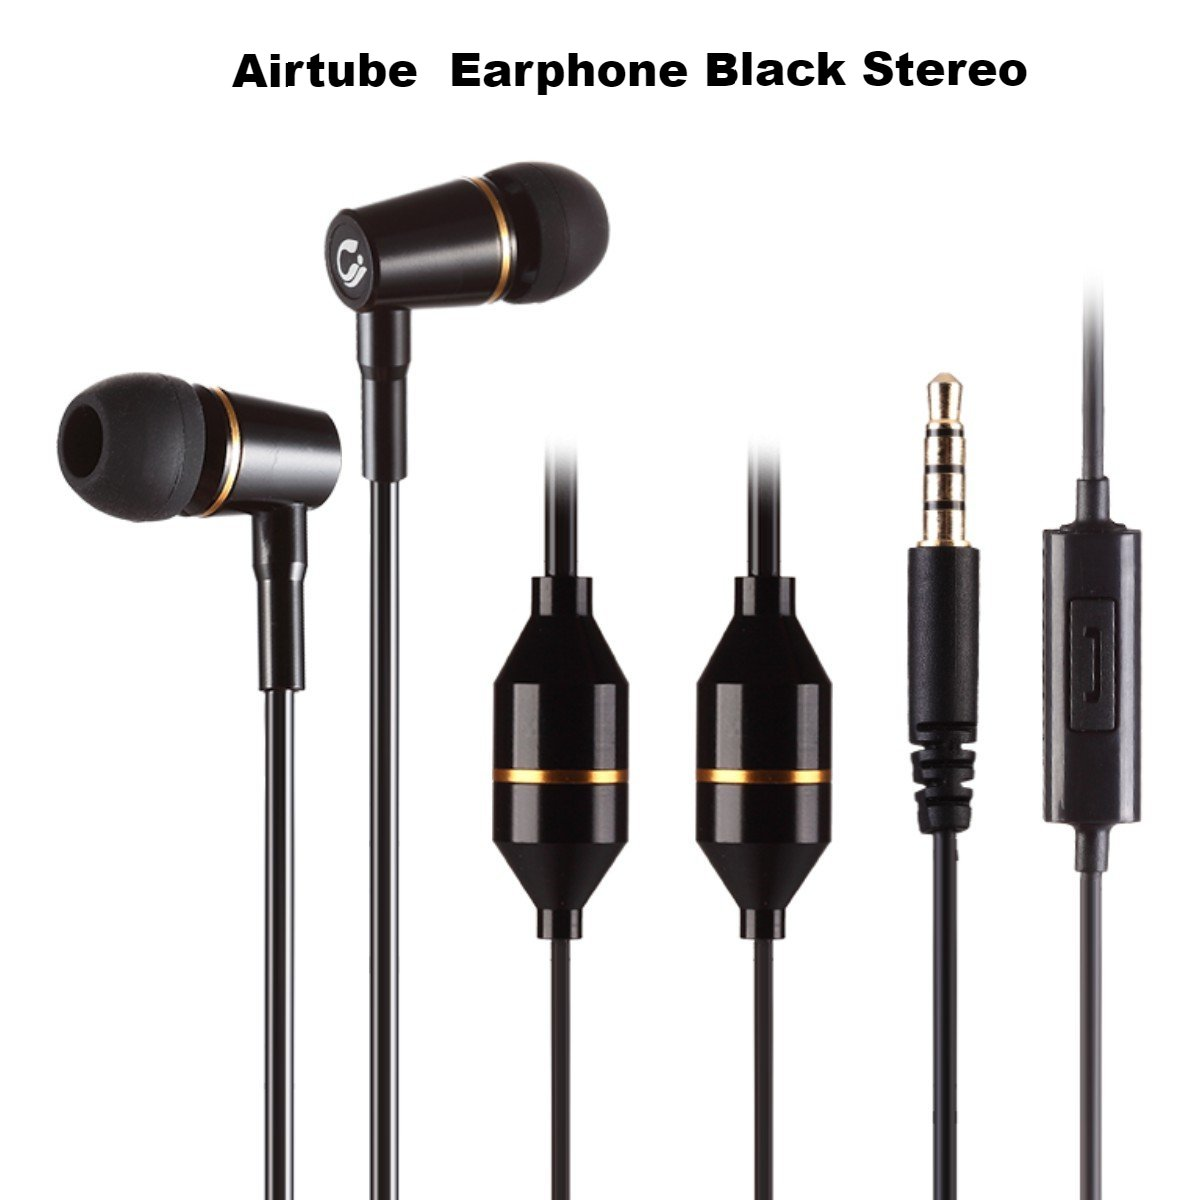 Airtube earphone black stereo